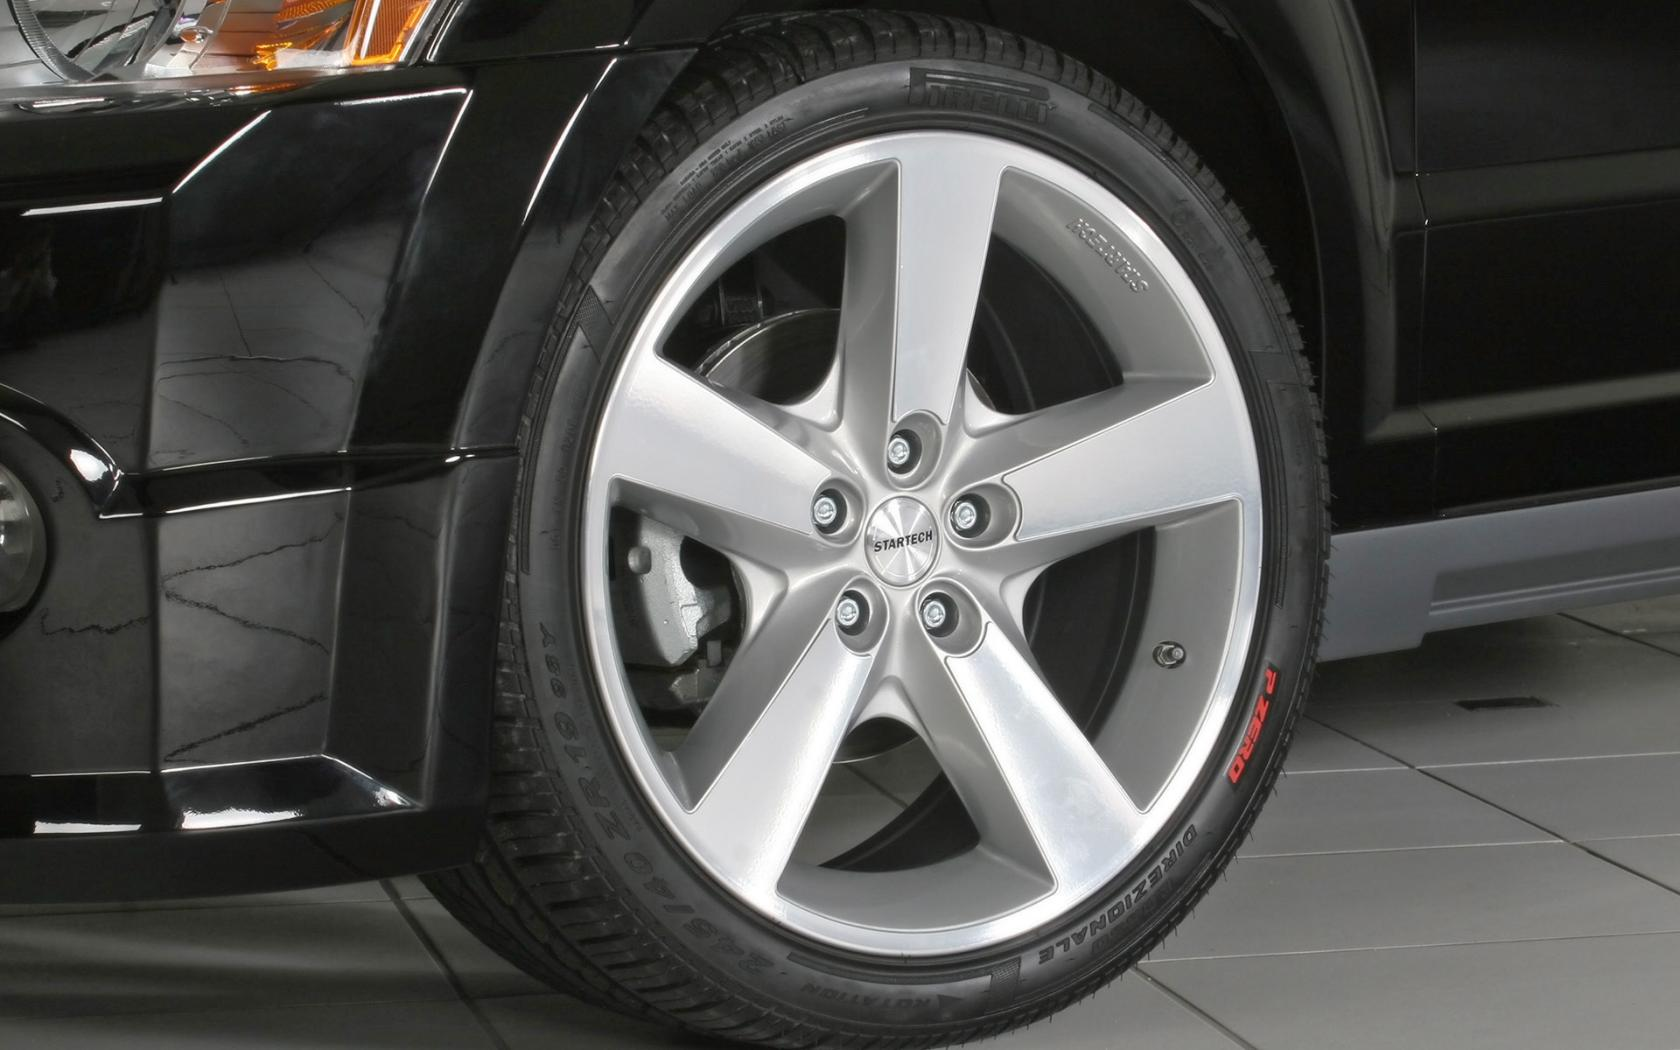 2007 Startech Dodge Caliber Wheel 1680x1050